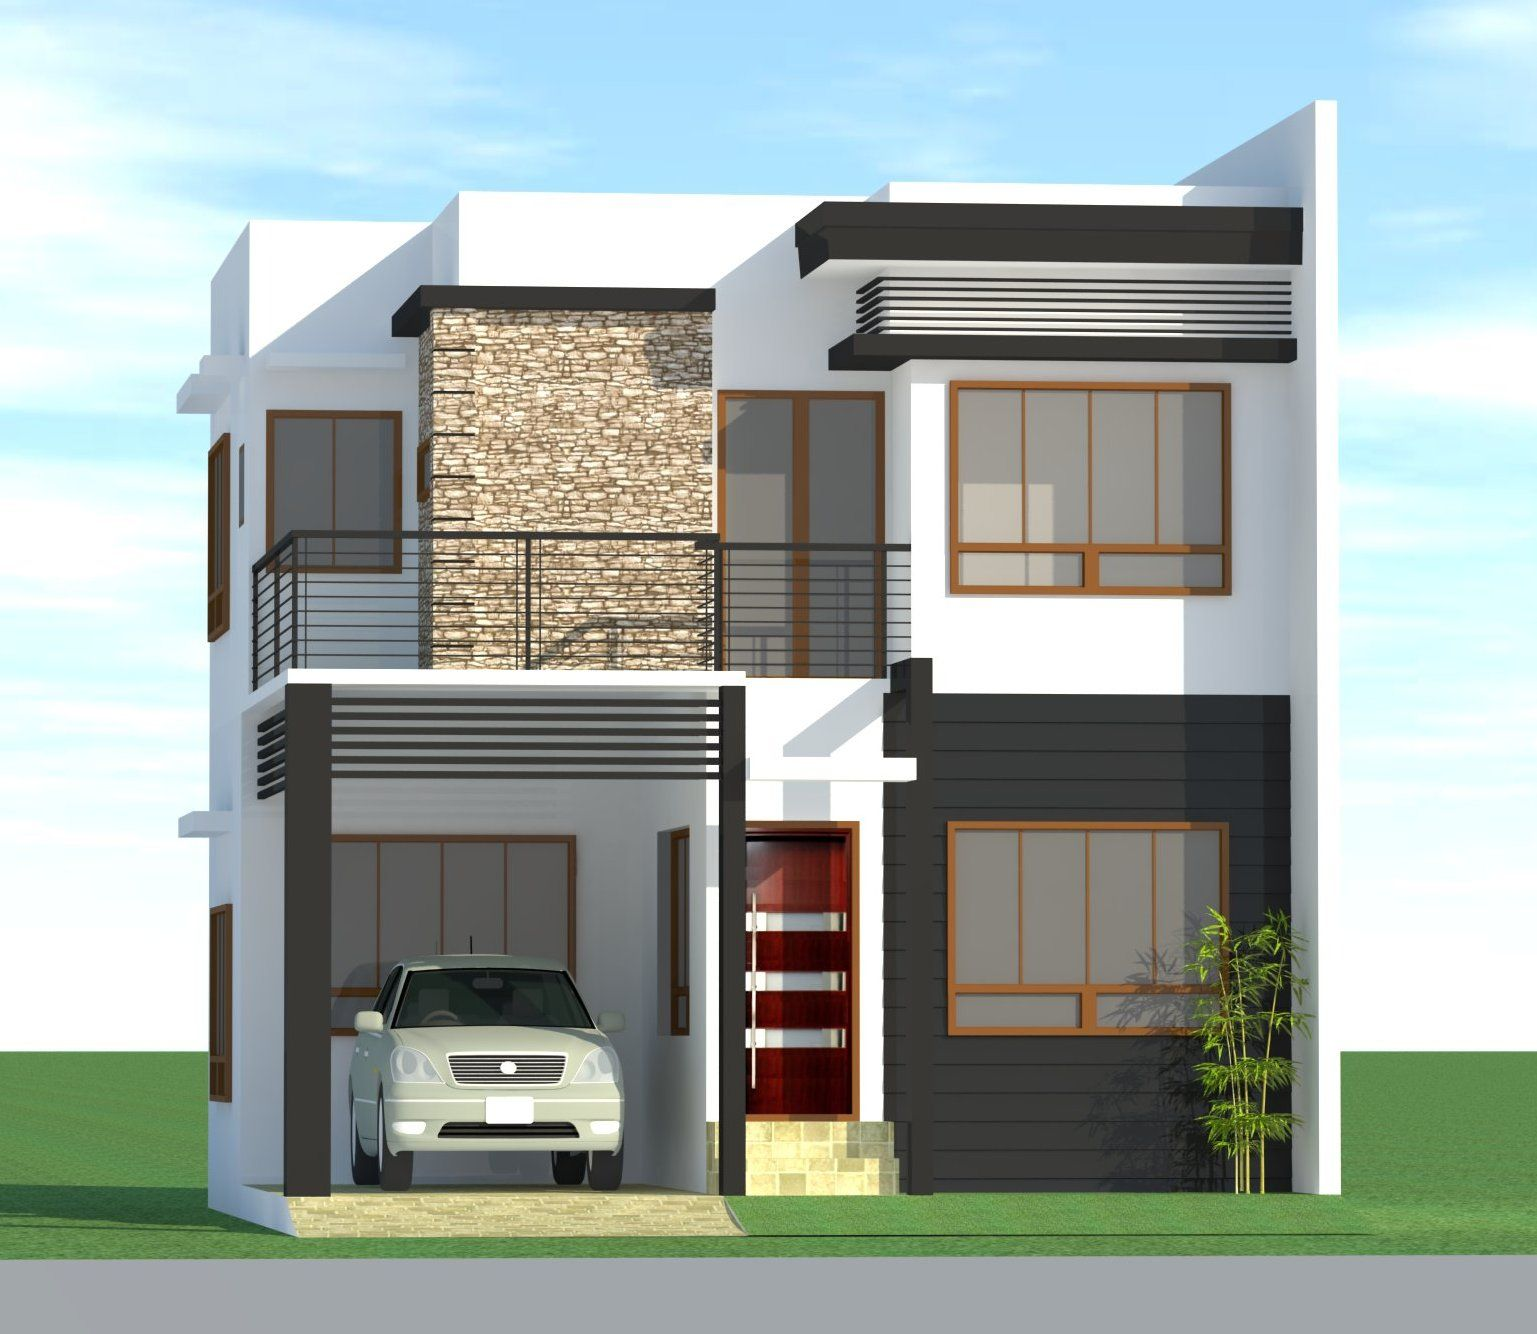 Modern Exterior Design Ideas | Dubai city, Villa design and Markers